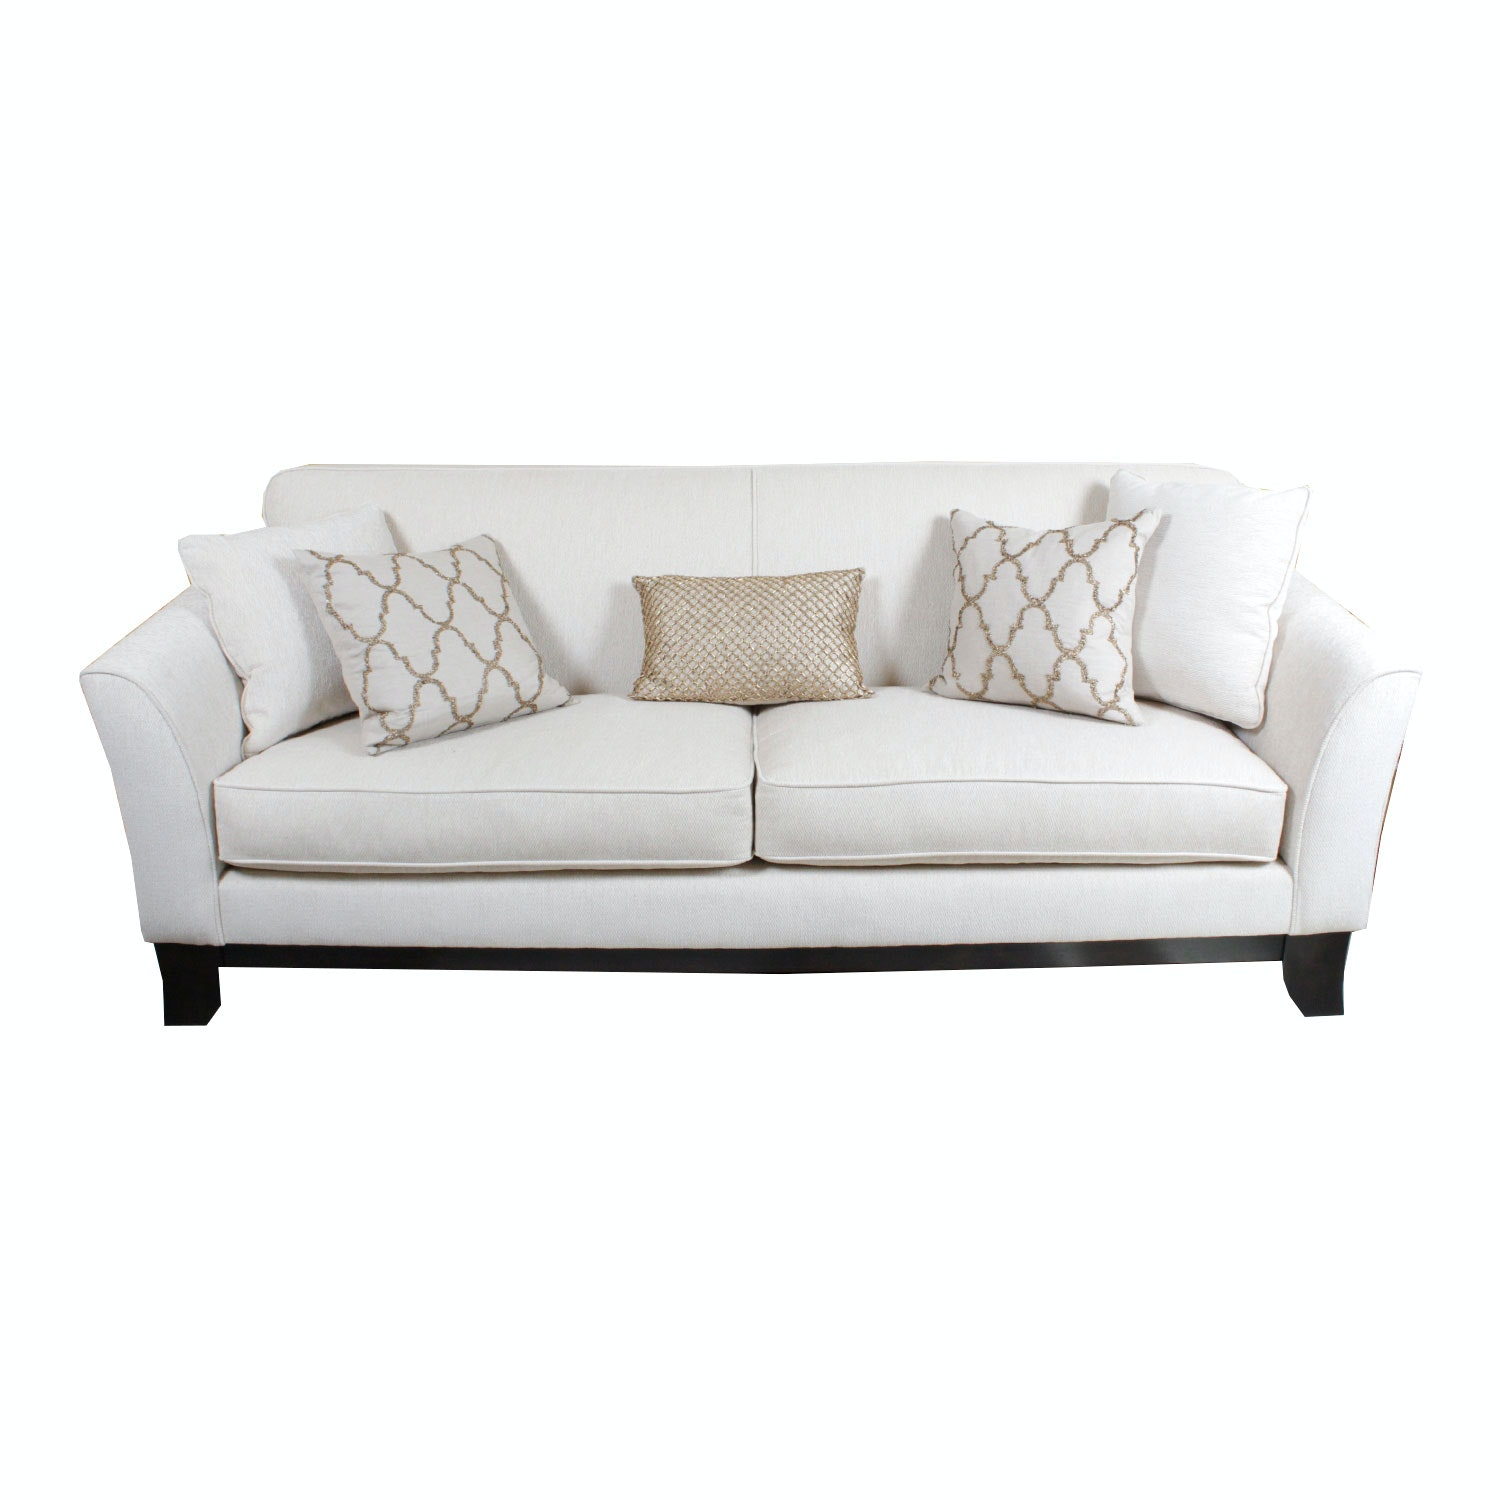 Greenwich Upholstered Sofa by Pottery Barn